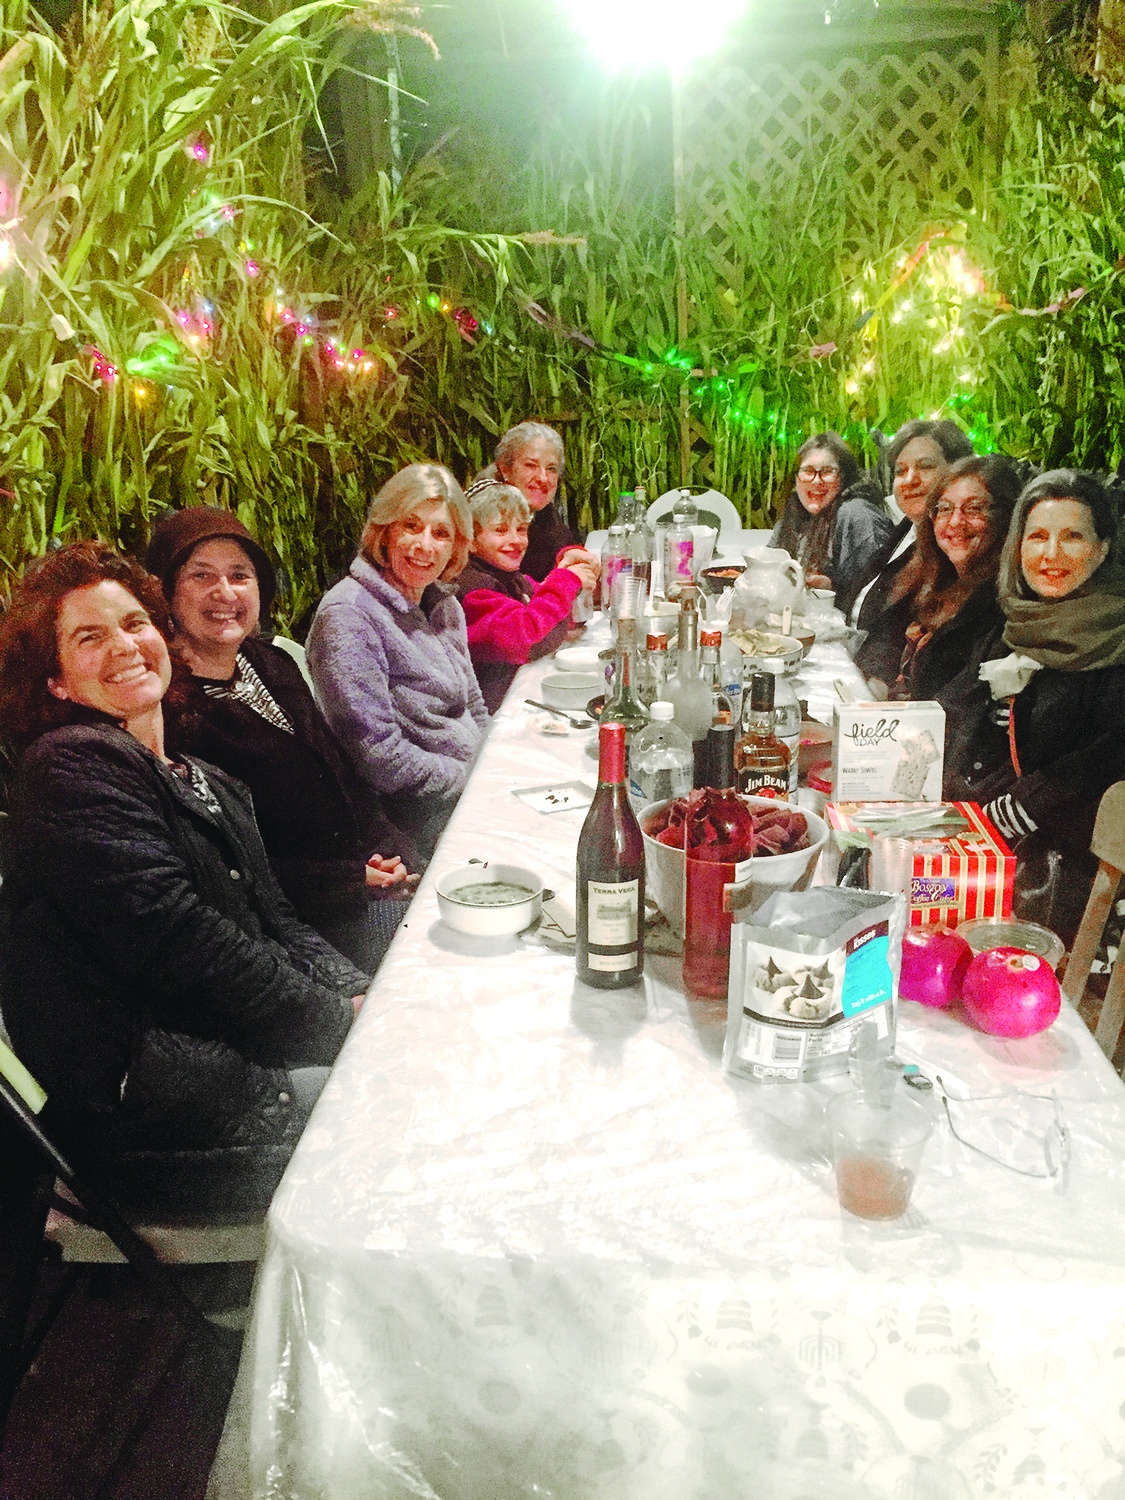 Women gathered for a Core Connect RI program in the Felder family sukkah.